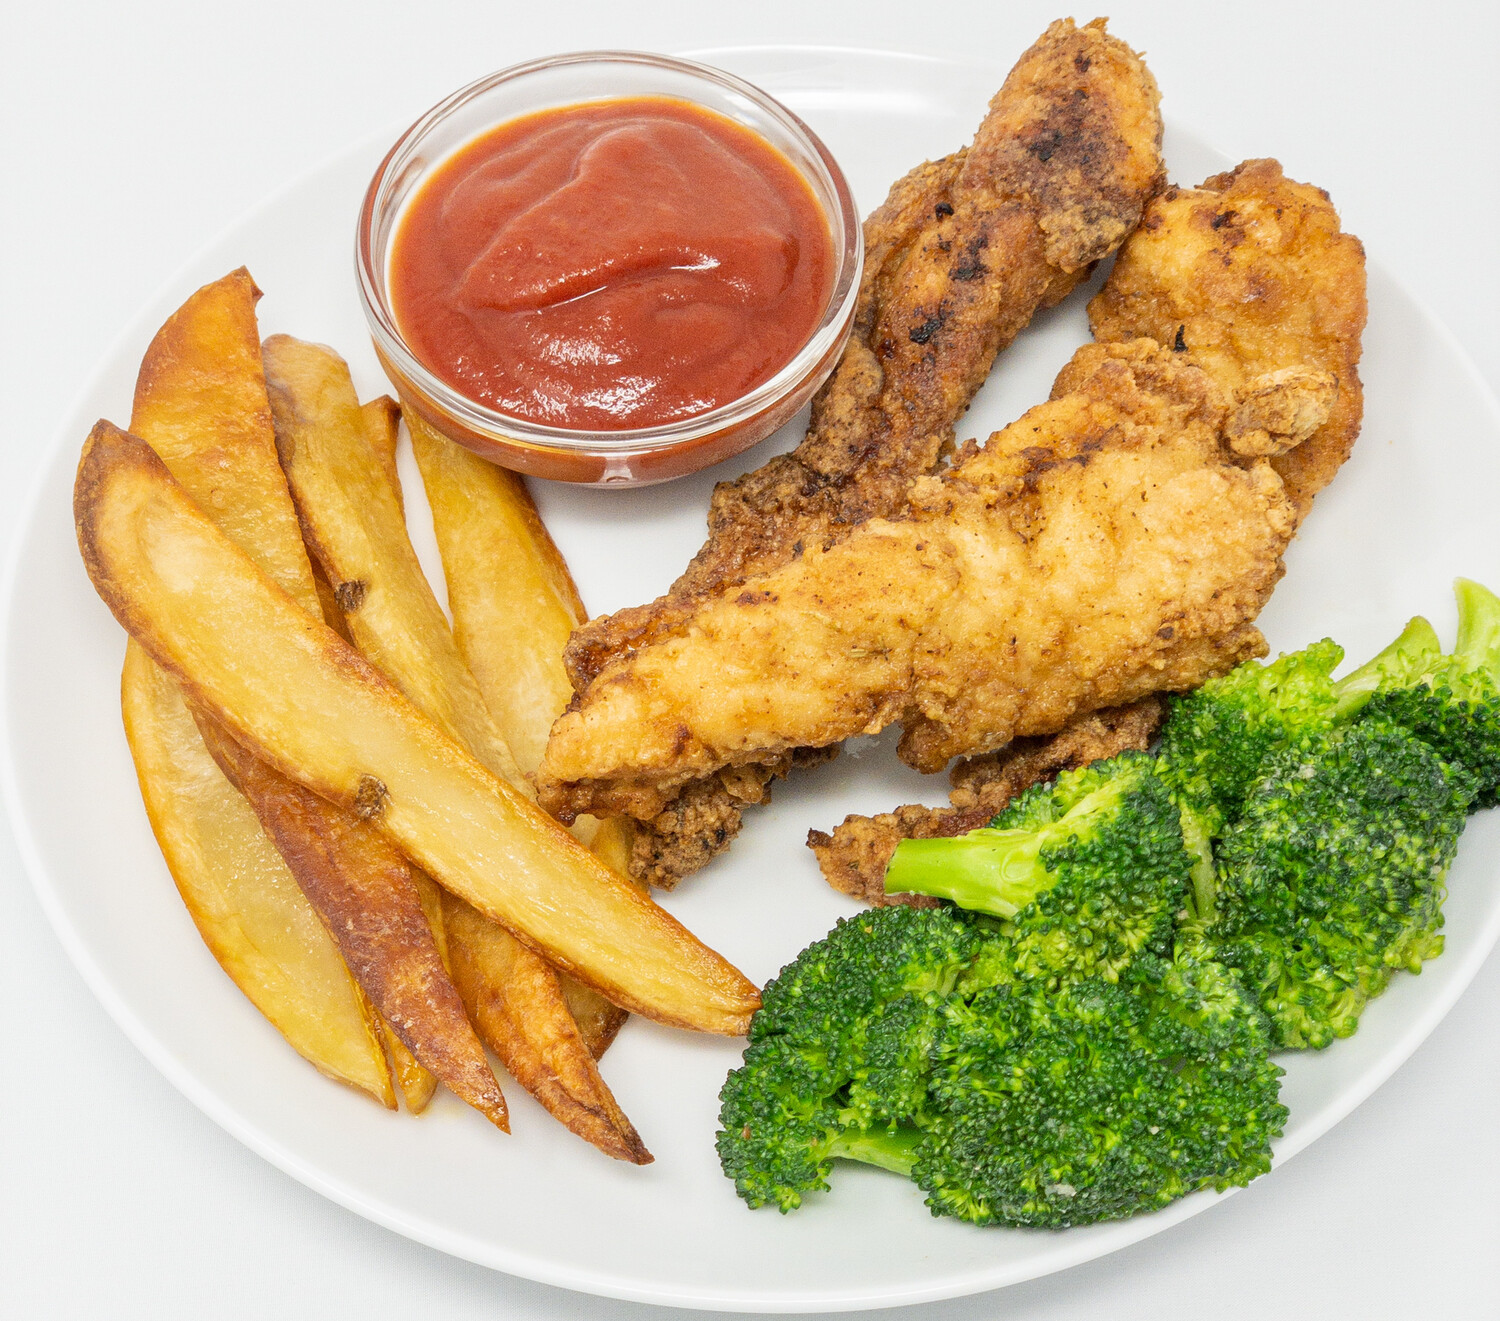 Chicken Fingers, Fries, Broccoli